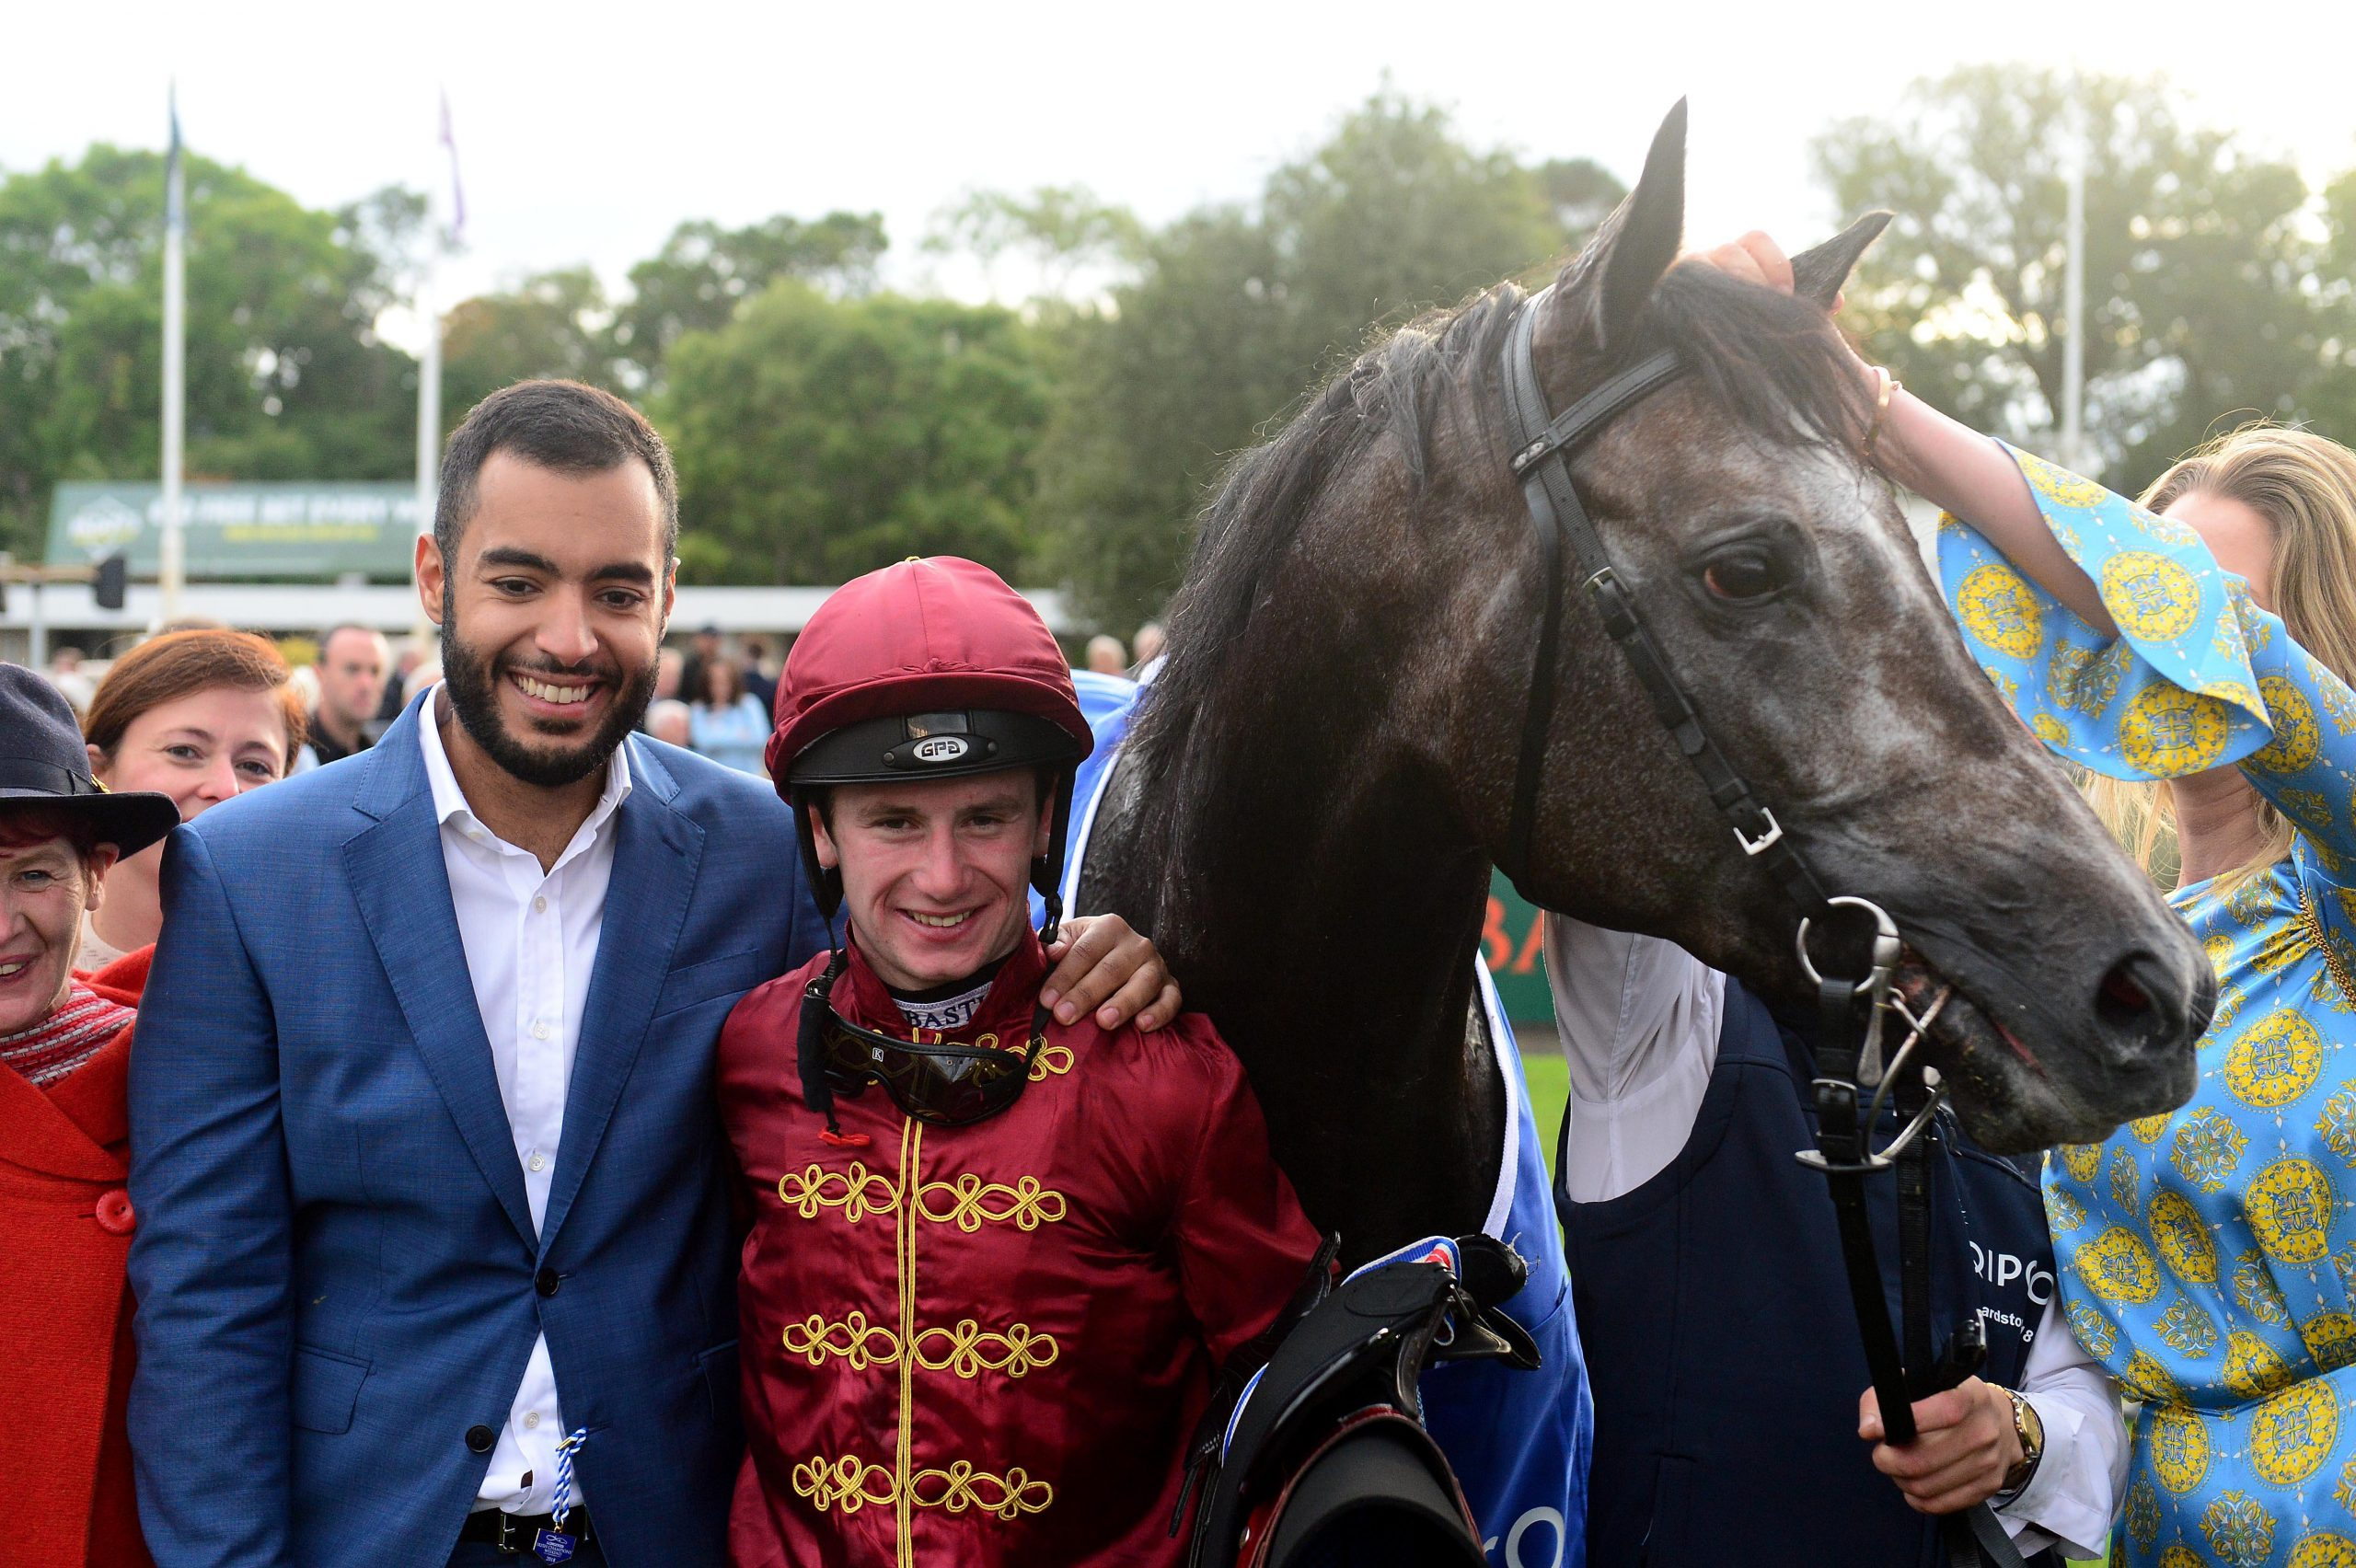 PKW6EM Horse Roaring Lion and owner Sheikh Fahad Al Tani and jockey Oisin Murphy (centre) after win during day one of the 2018 Longines Irish Champions Weekend at Leopardstown Racecourse, Dublin.